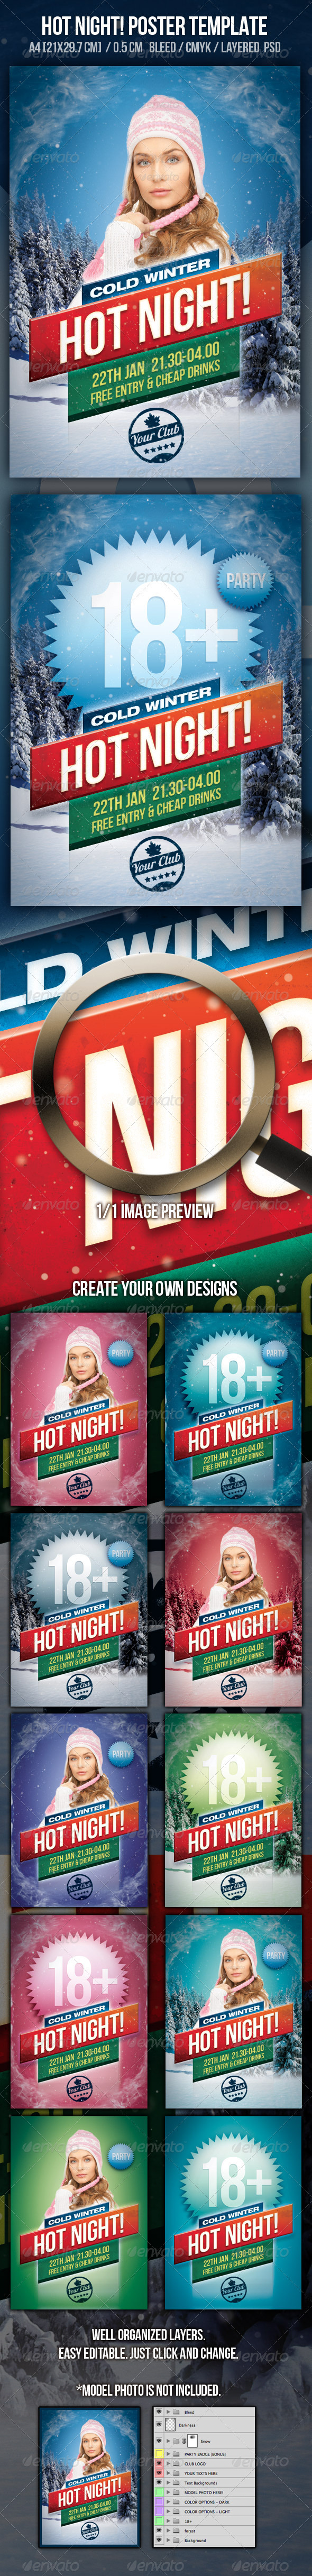 Hot Night Party Design Template - Clubs & Parties Events